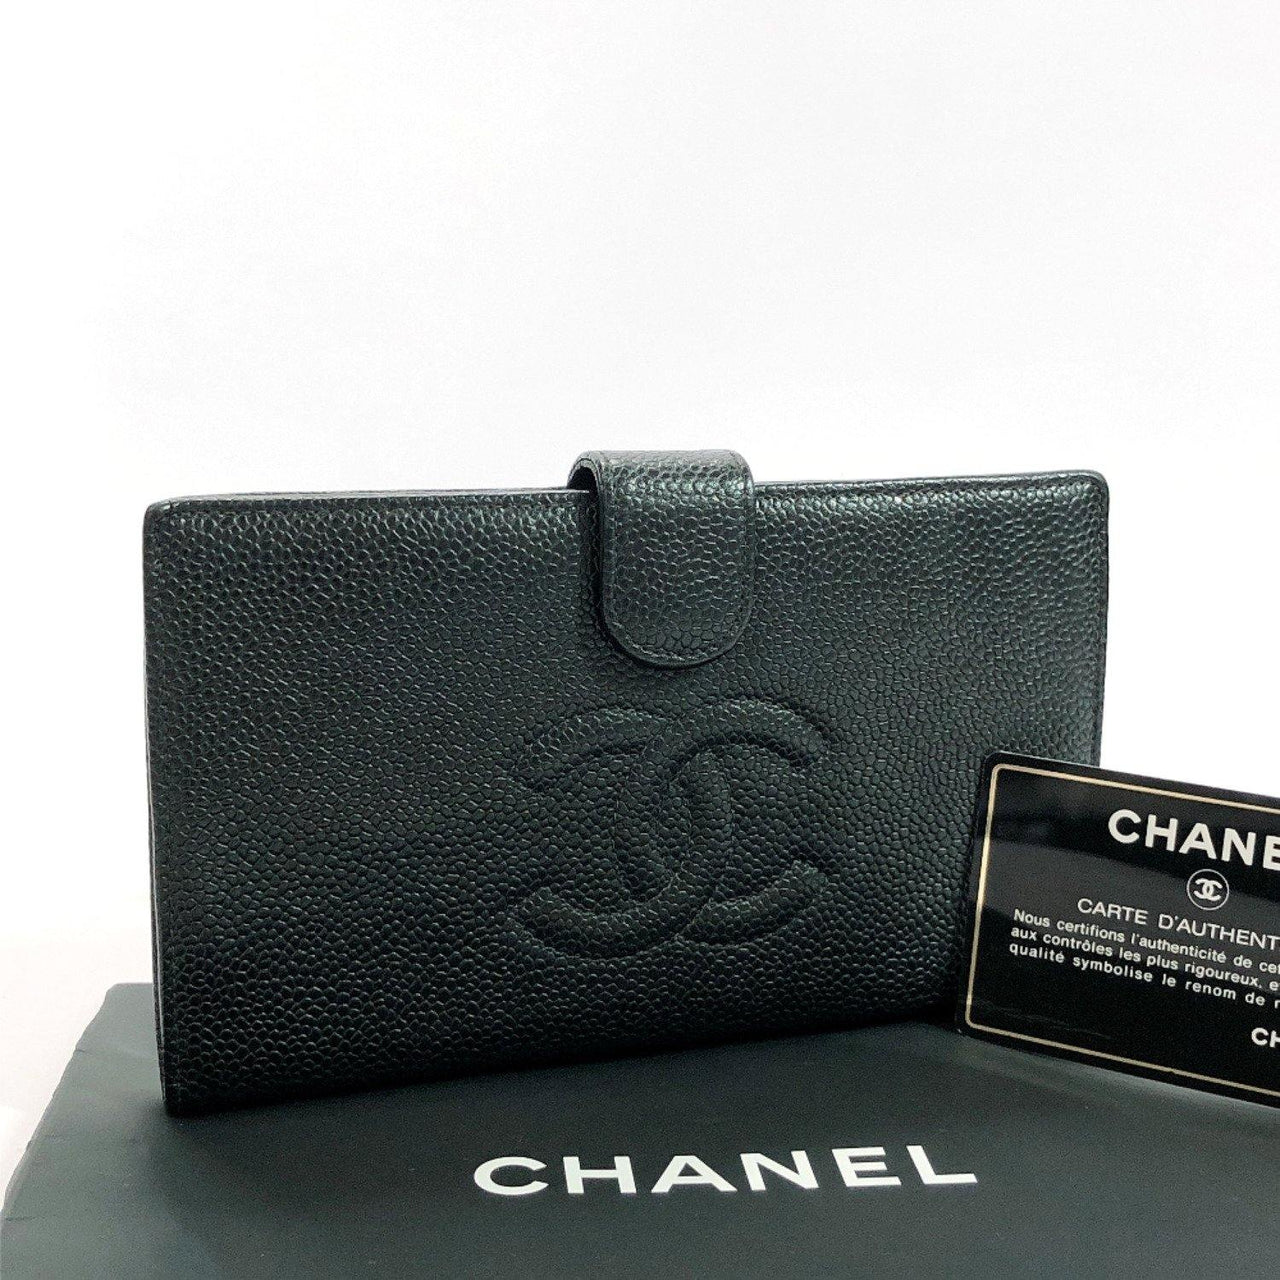 CHANEL purse COCO Mark purse with a clasp Matt caviar skin black Women Used - JP-BRANDS.com